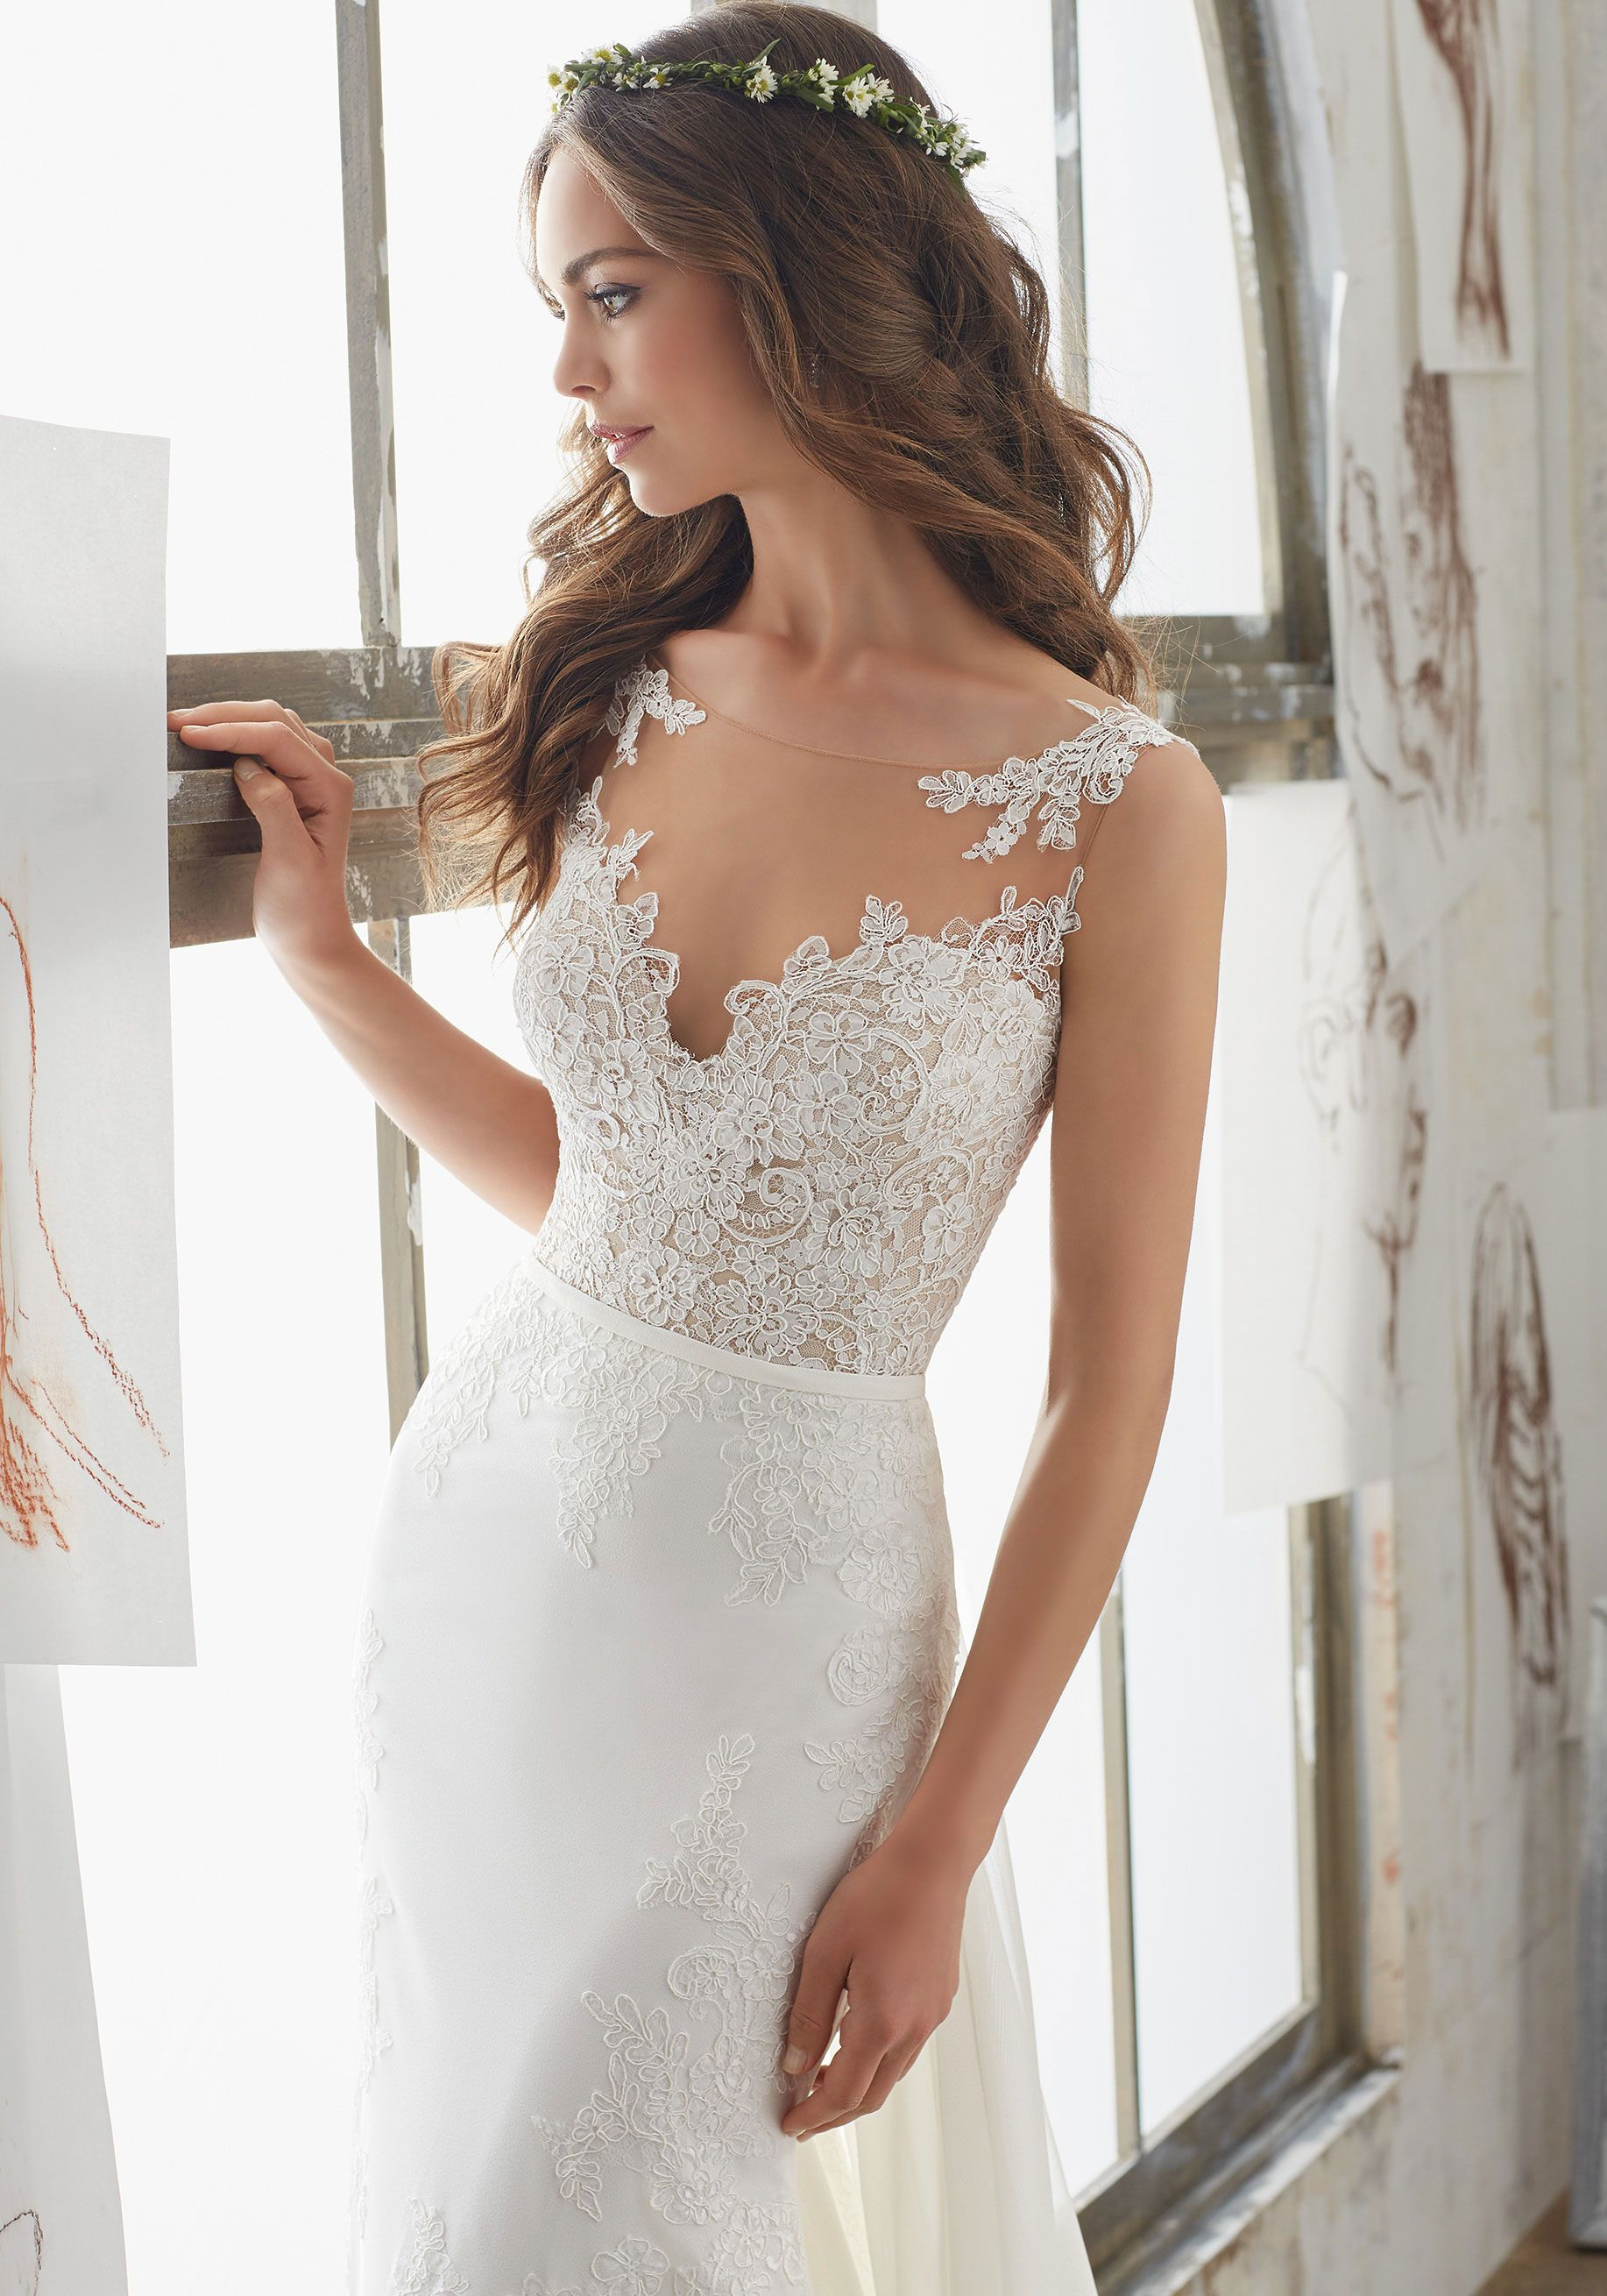 2017 Wedding Dresses And Bridal Gowns By Morilee Madeline Gardner This Sheath Gown Has Lace LiquéŽs Detachable Train Illusion Neckline